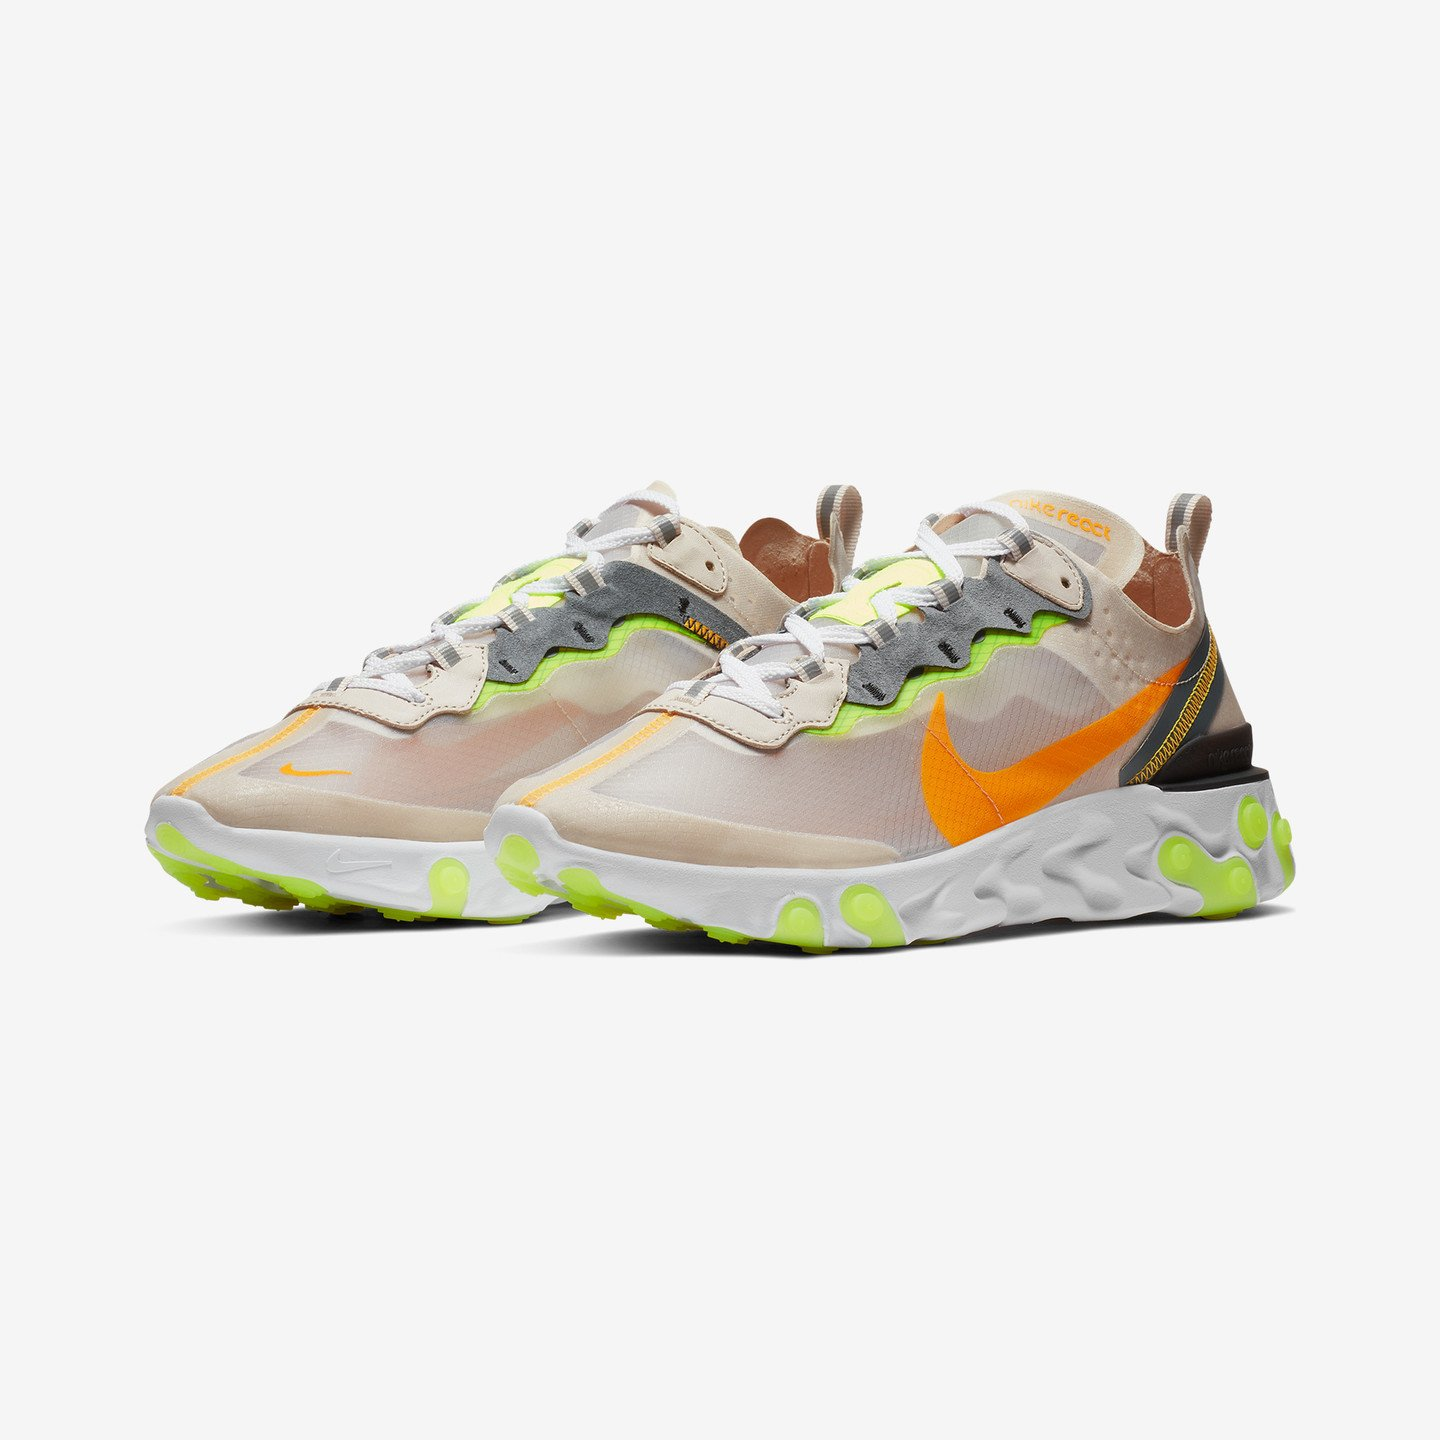 Nike React Element 87 Light Orewood Brown / Laser Orange / Volt Glow AQ1090-101